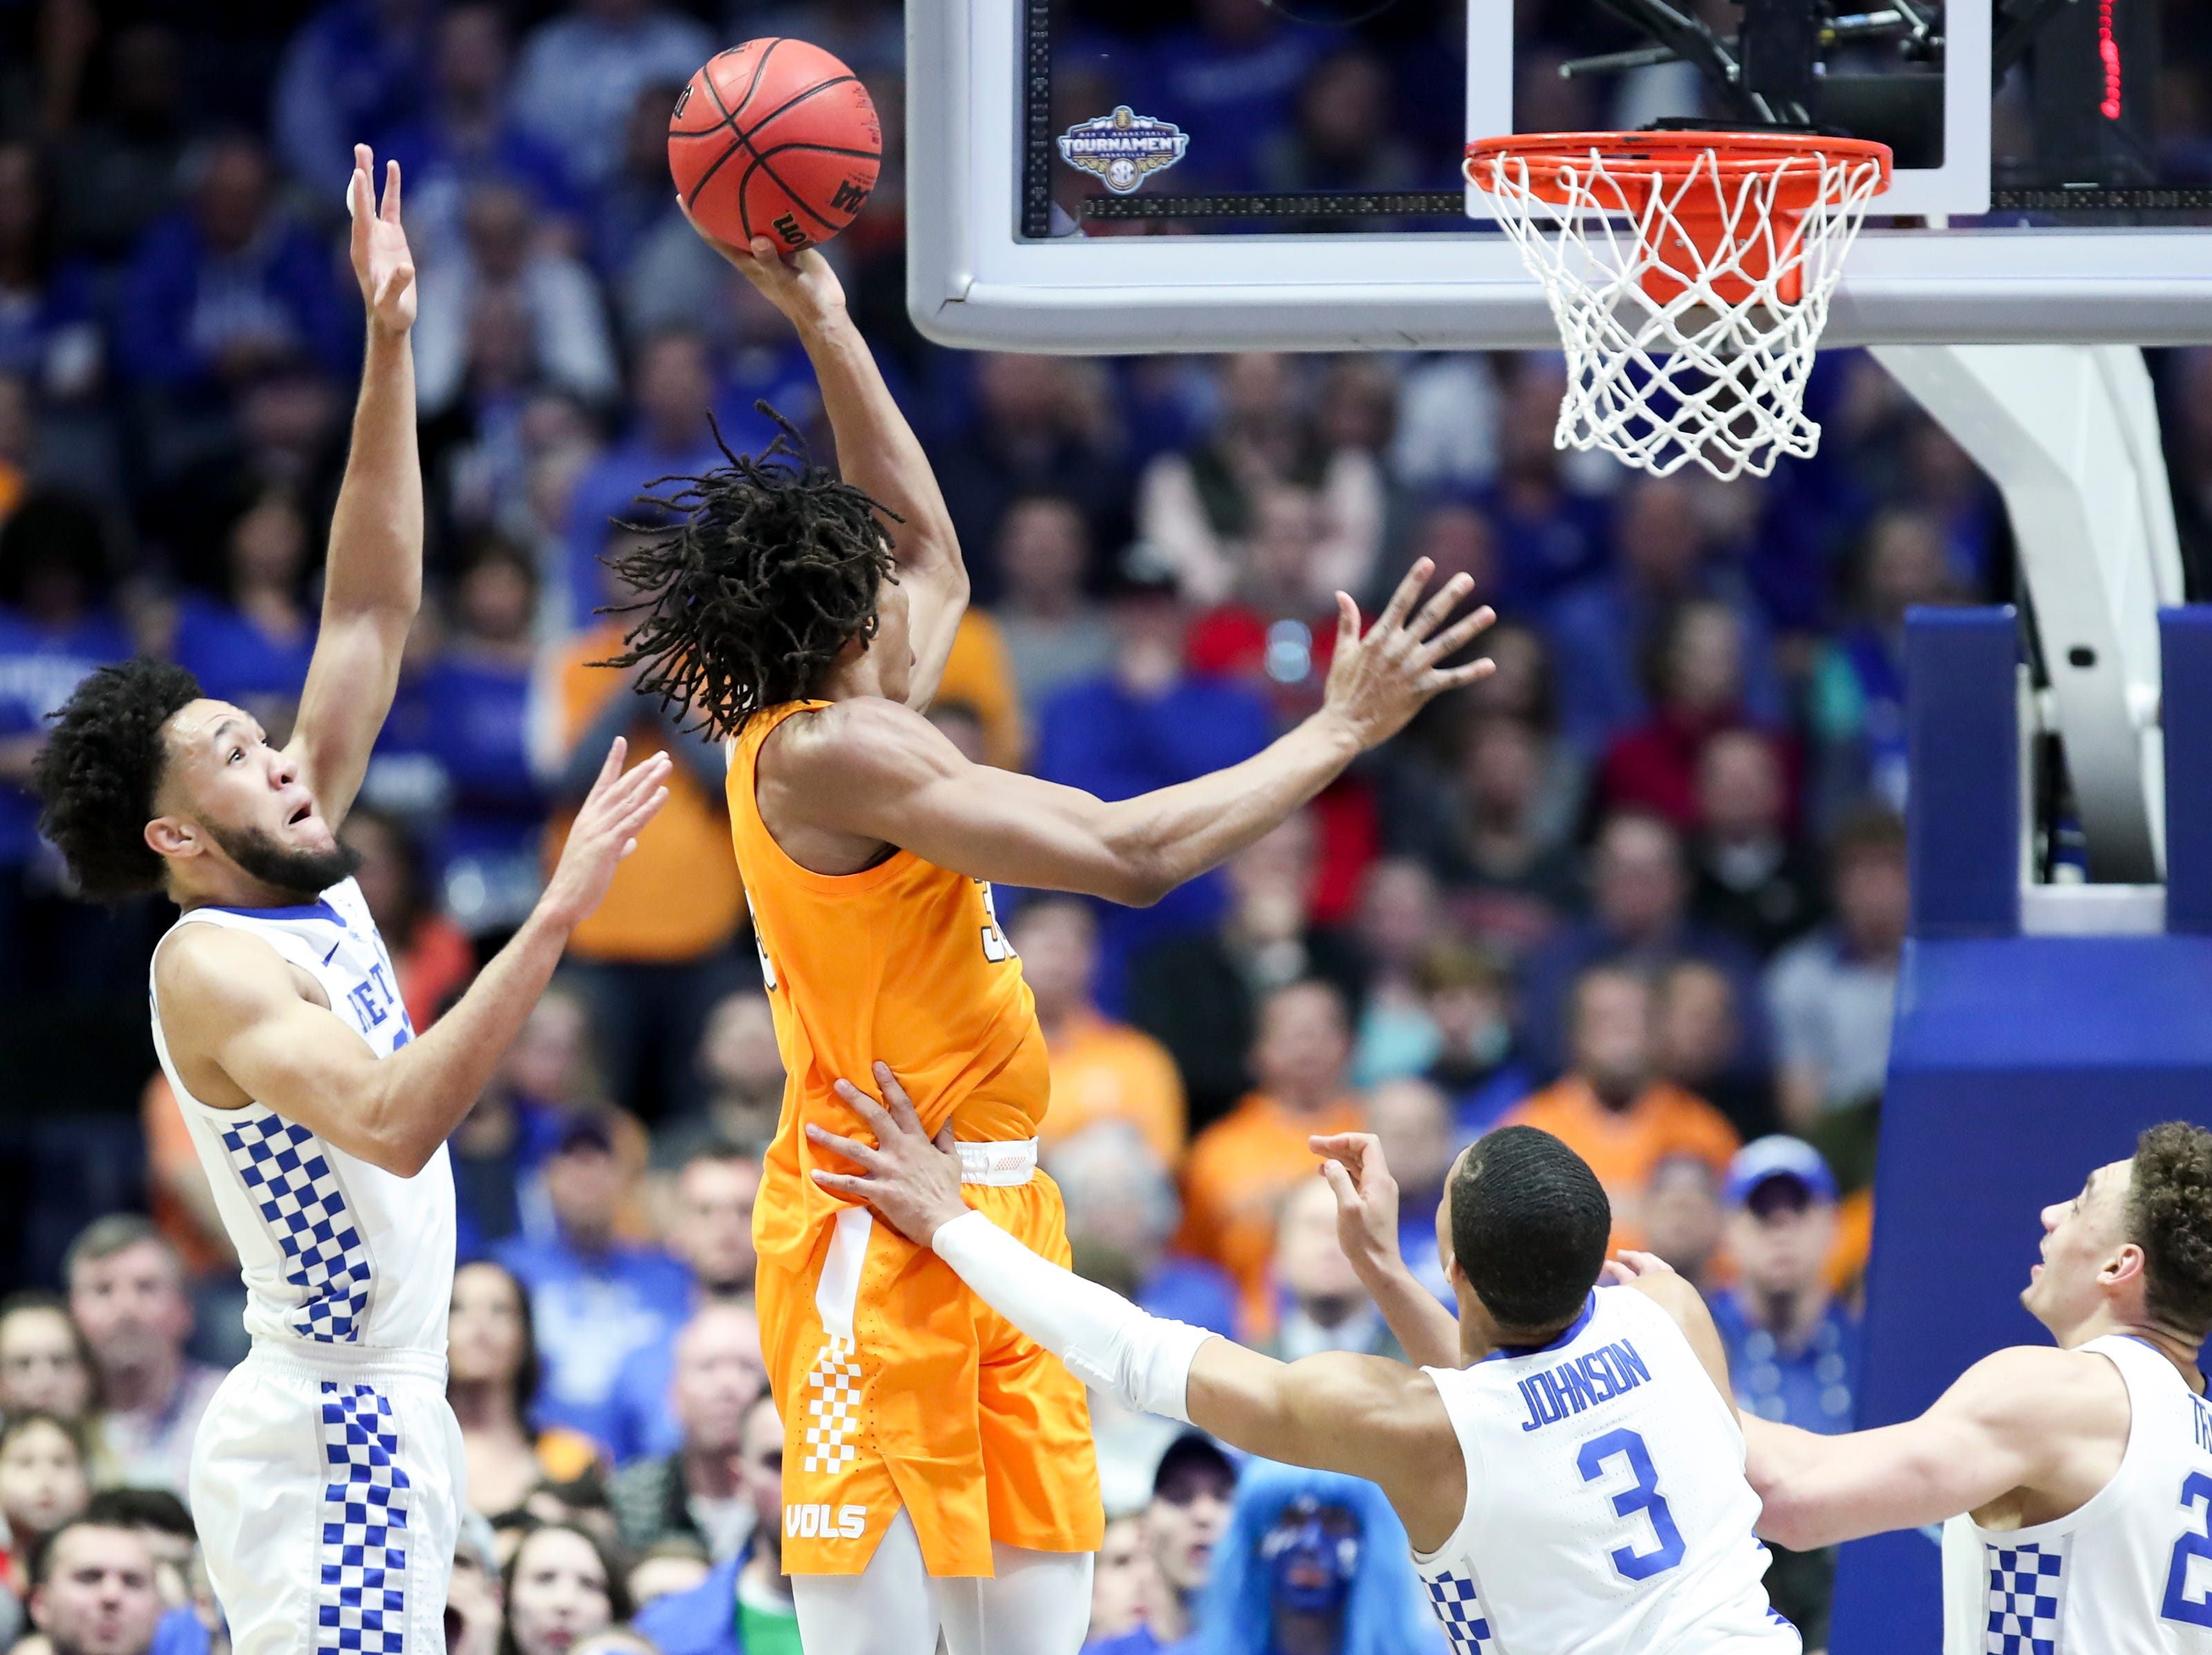 Tennessee forward Yves Pons (35) shoots past Kentucky forward EJ Montgomery (23) and guard Keldon Johnson (3) during the first half of the SEC Men's Basketball Tournament semifinal game at Bridgestone Arena in Nashville, Tenn., Saturday, March 16, 2019.